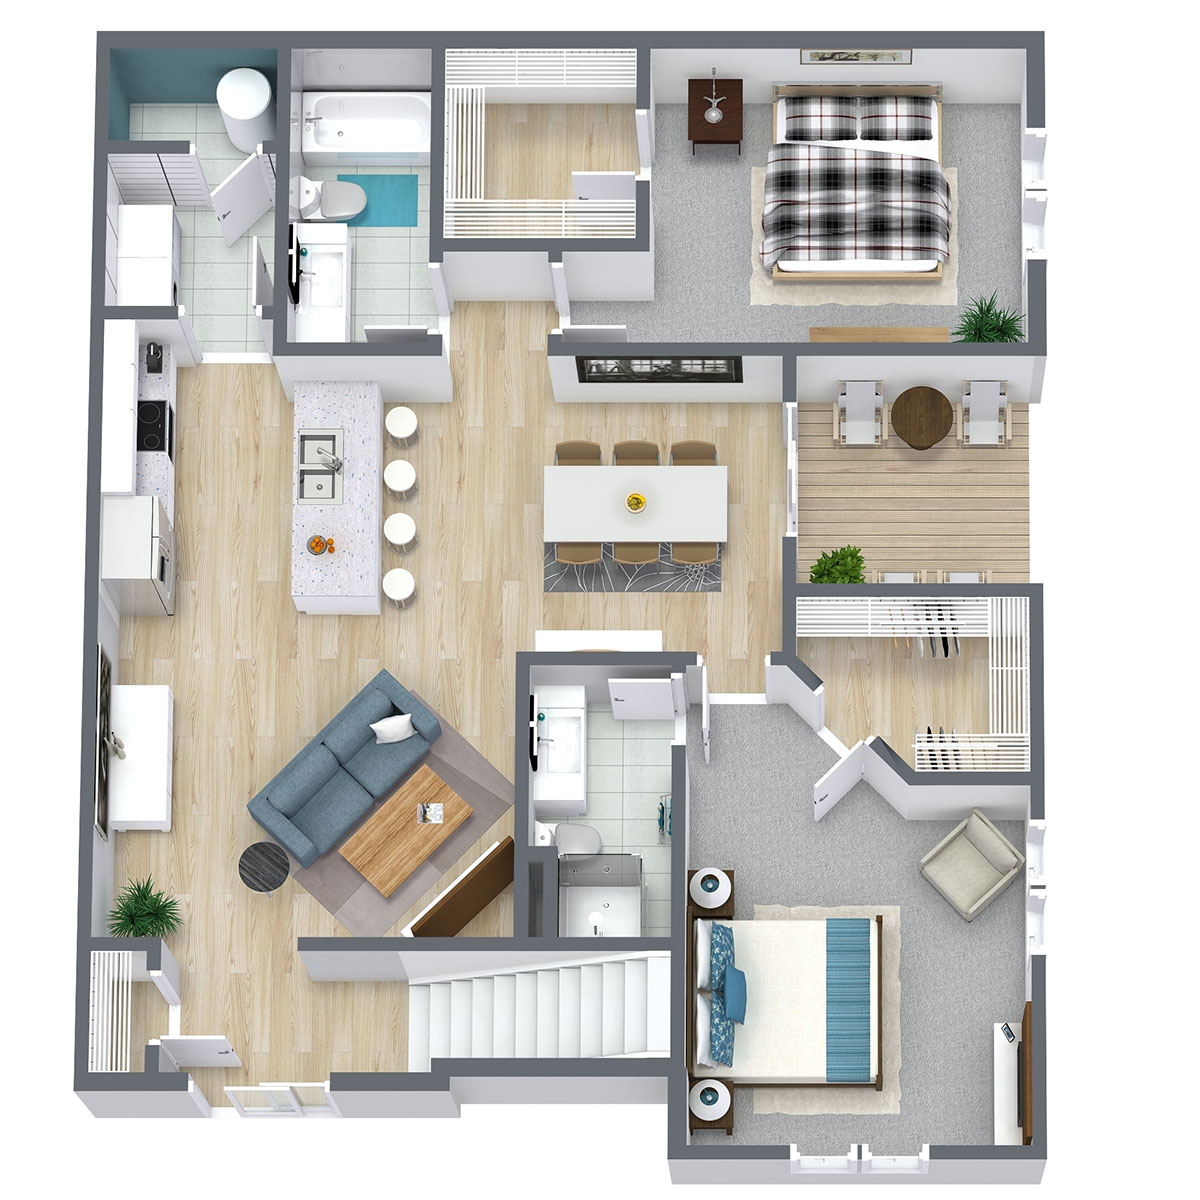 Floorplan - Two Bed Two Bath 1174 image